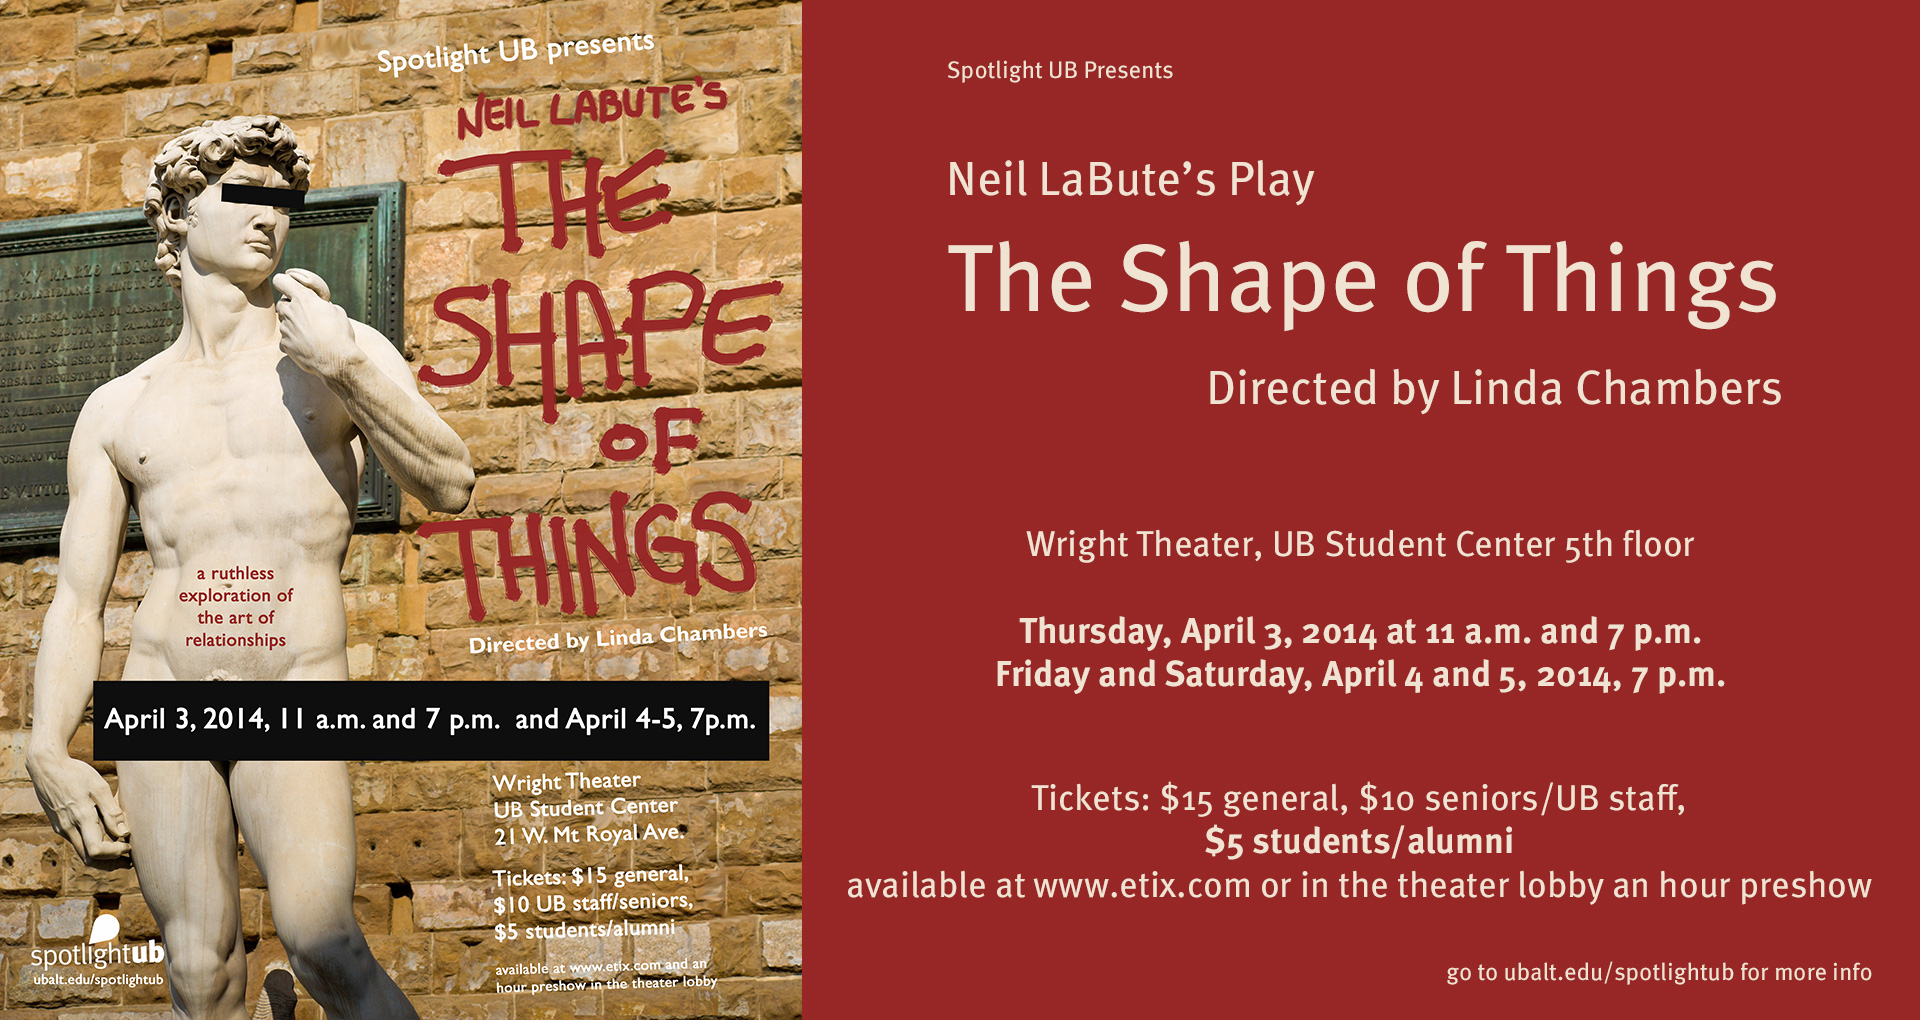 The Shape of Things Matinee